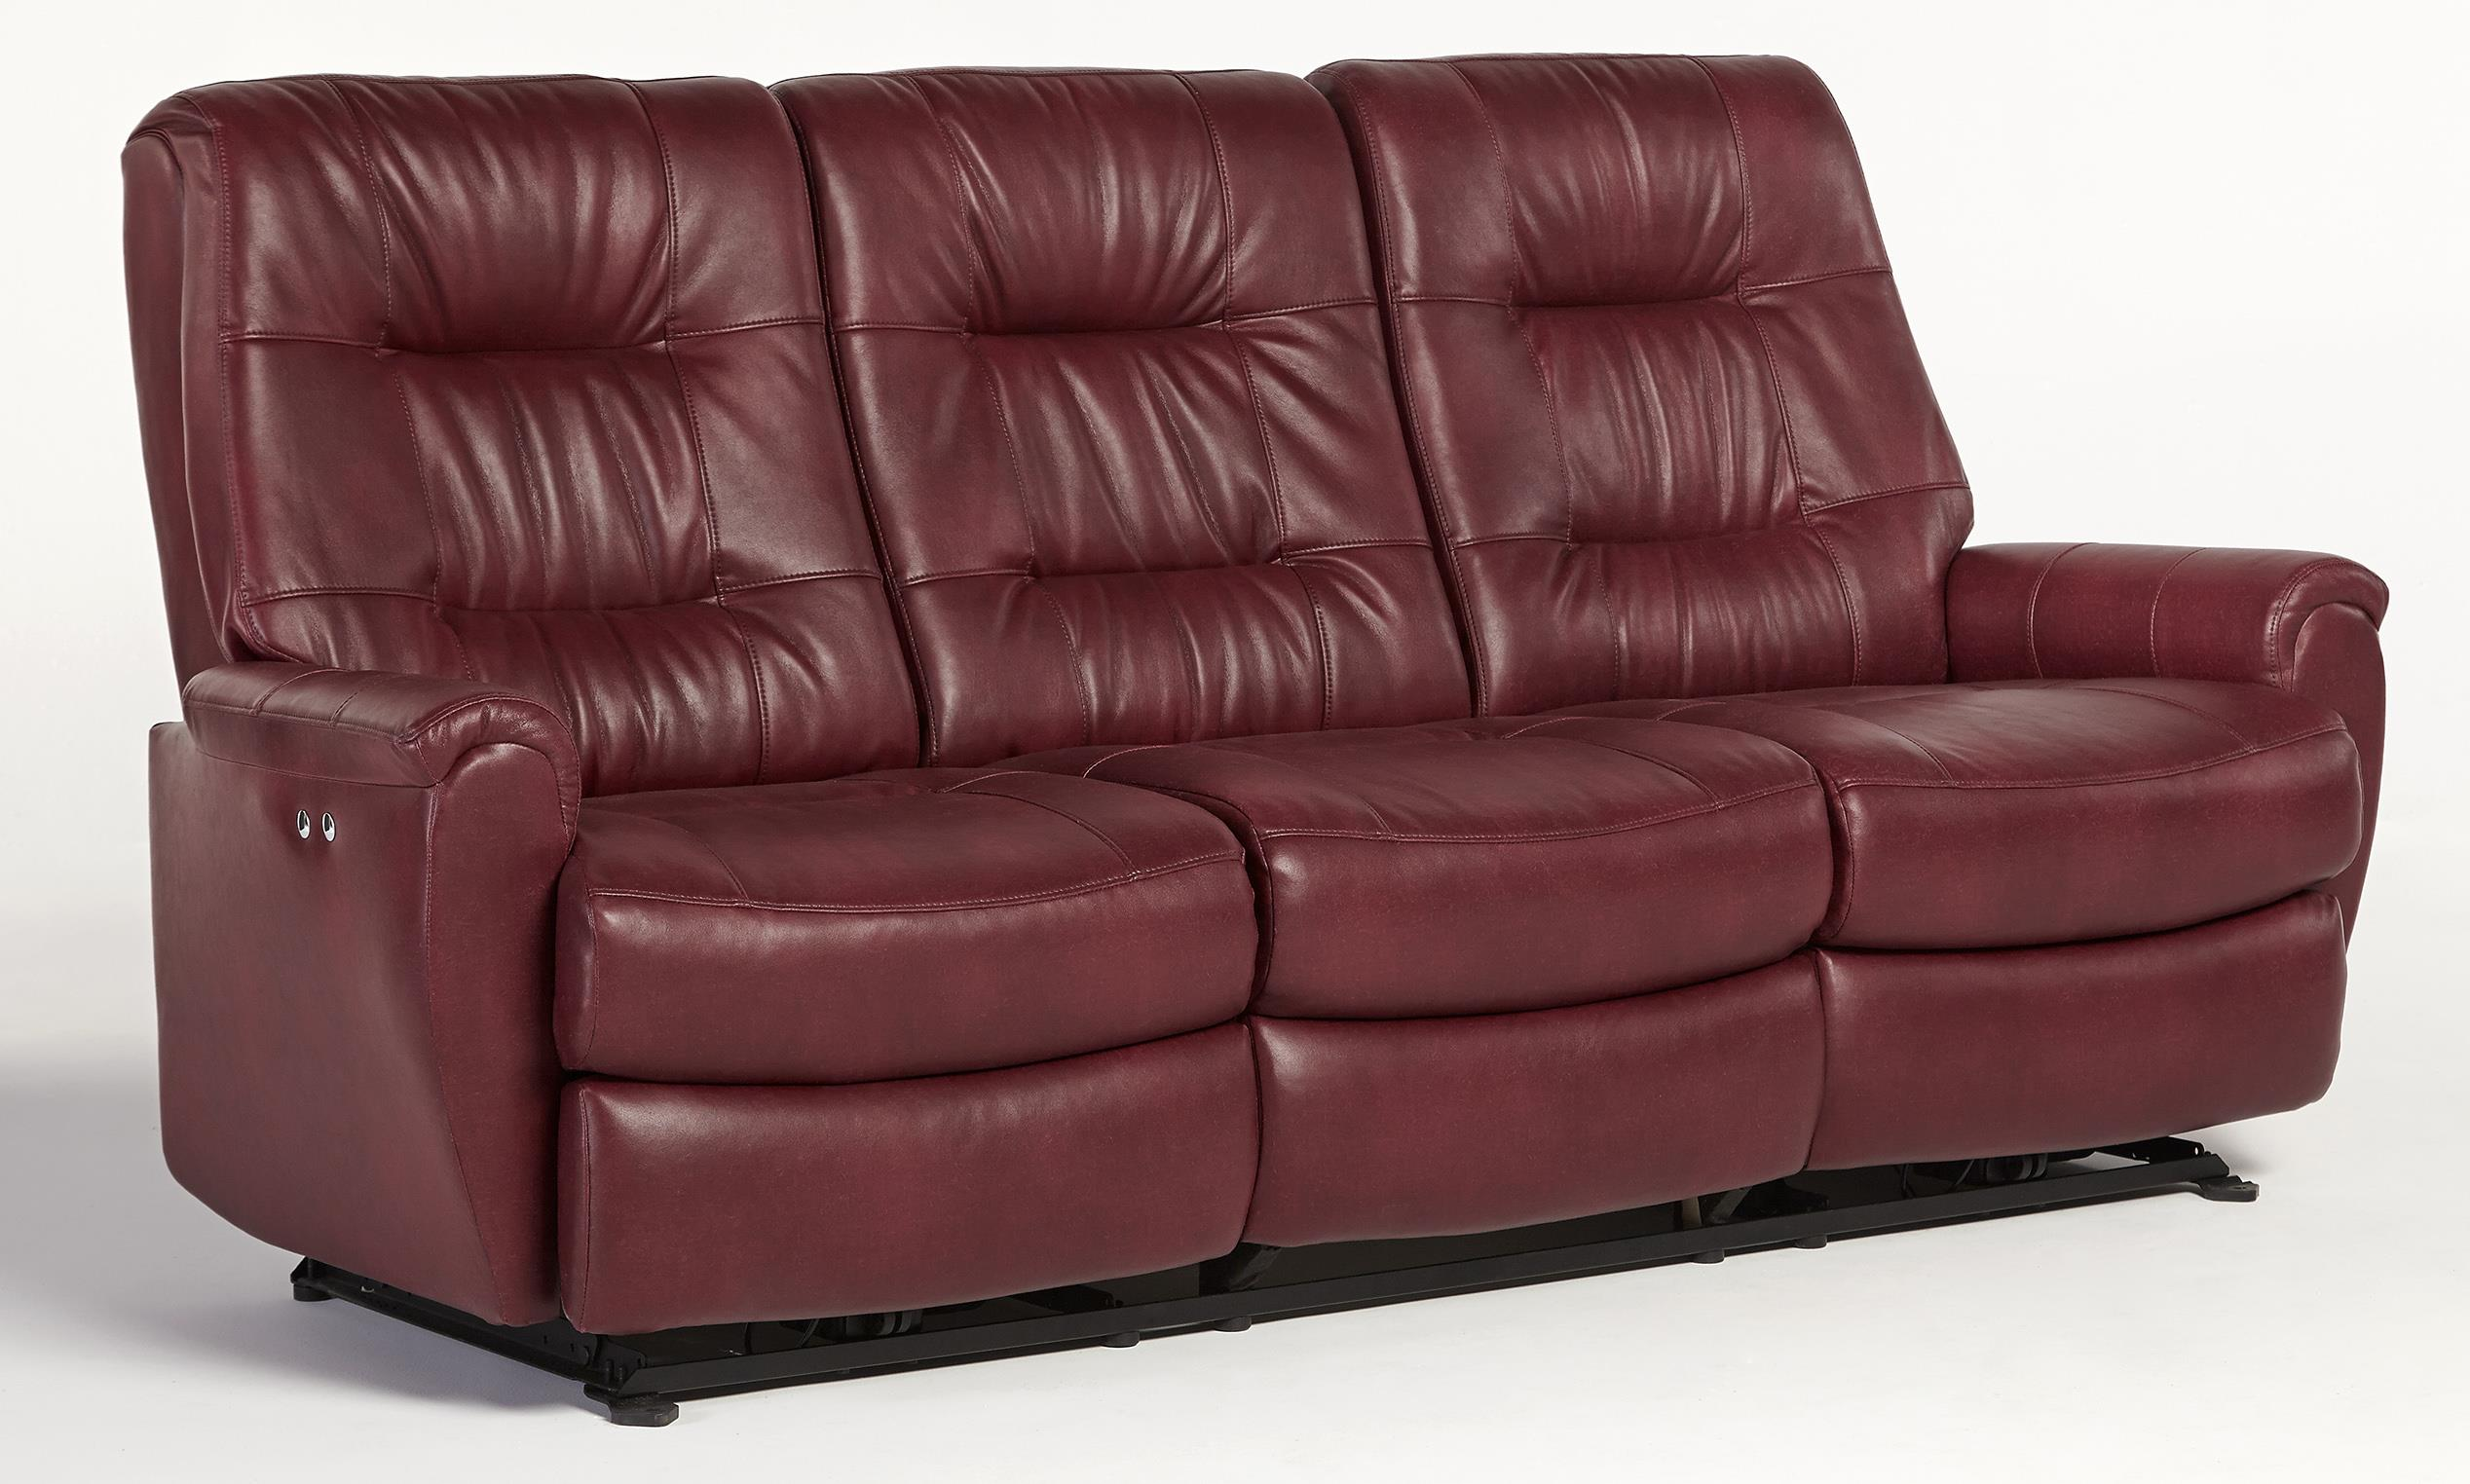 Best Home Furnishings Felicia S270ua4 Small Scale Reclining Sofa With Chic Button Tufting